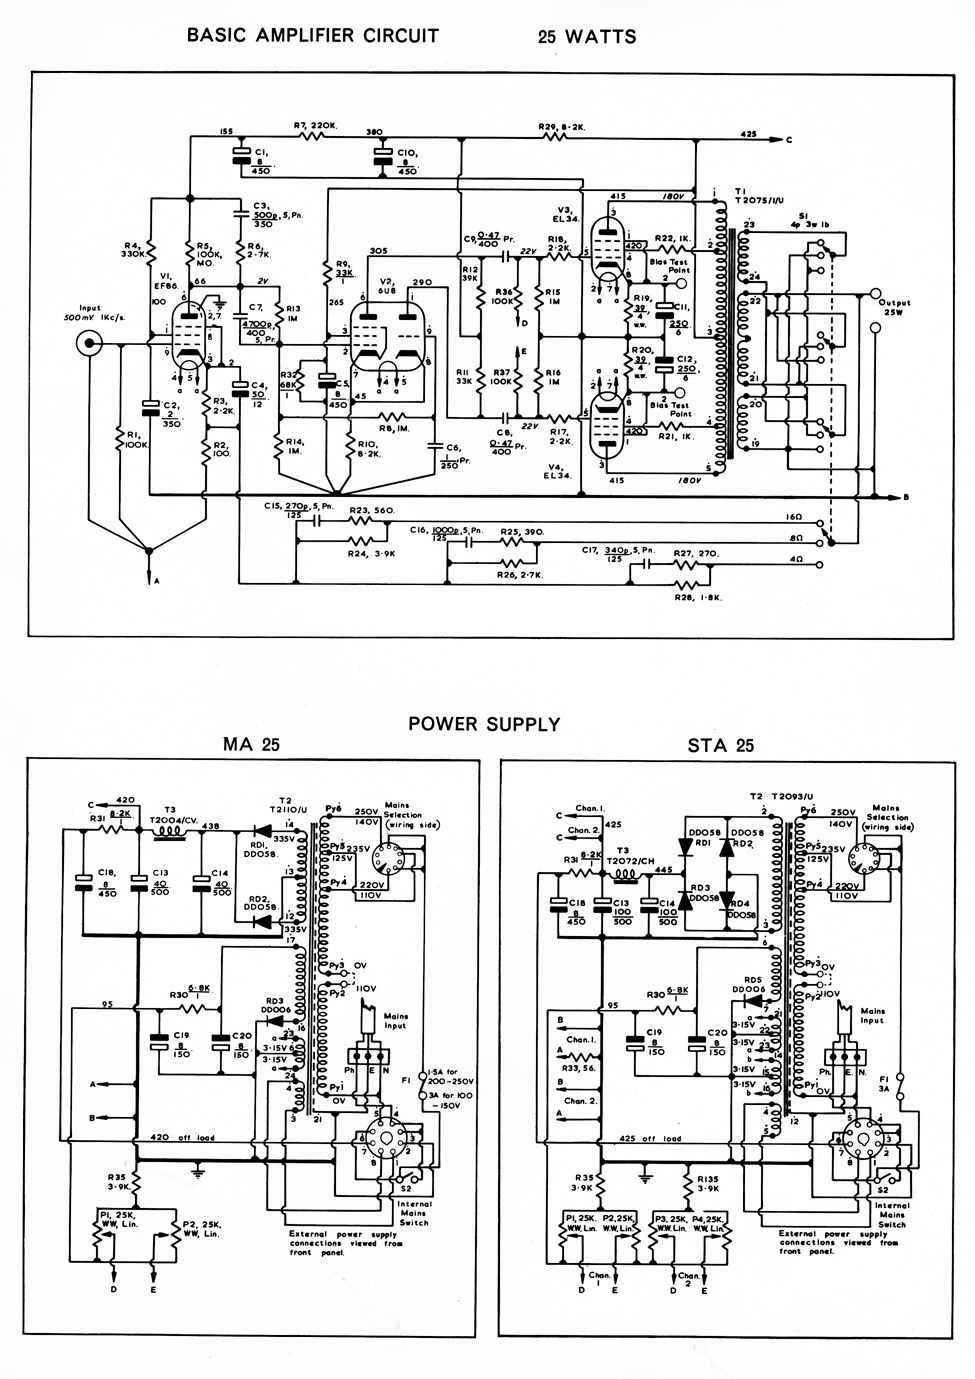 Simple Gauss Detection Switch L41074 in addition 211manual further Basic Triode Circuits besides Pierro Silver Coffee Machine Body Spare Parts in addition Goodman Electric Furnace Wiring Diagram. on home schematics